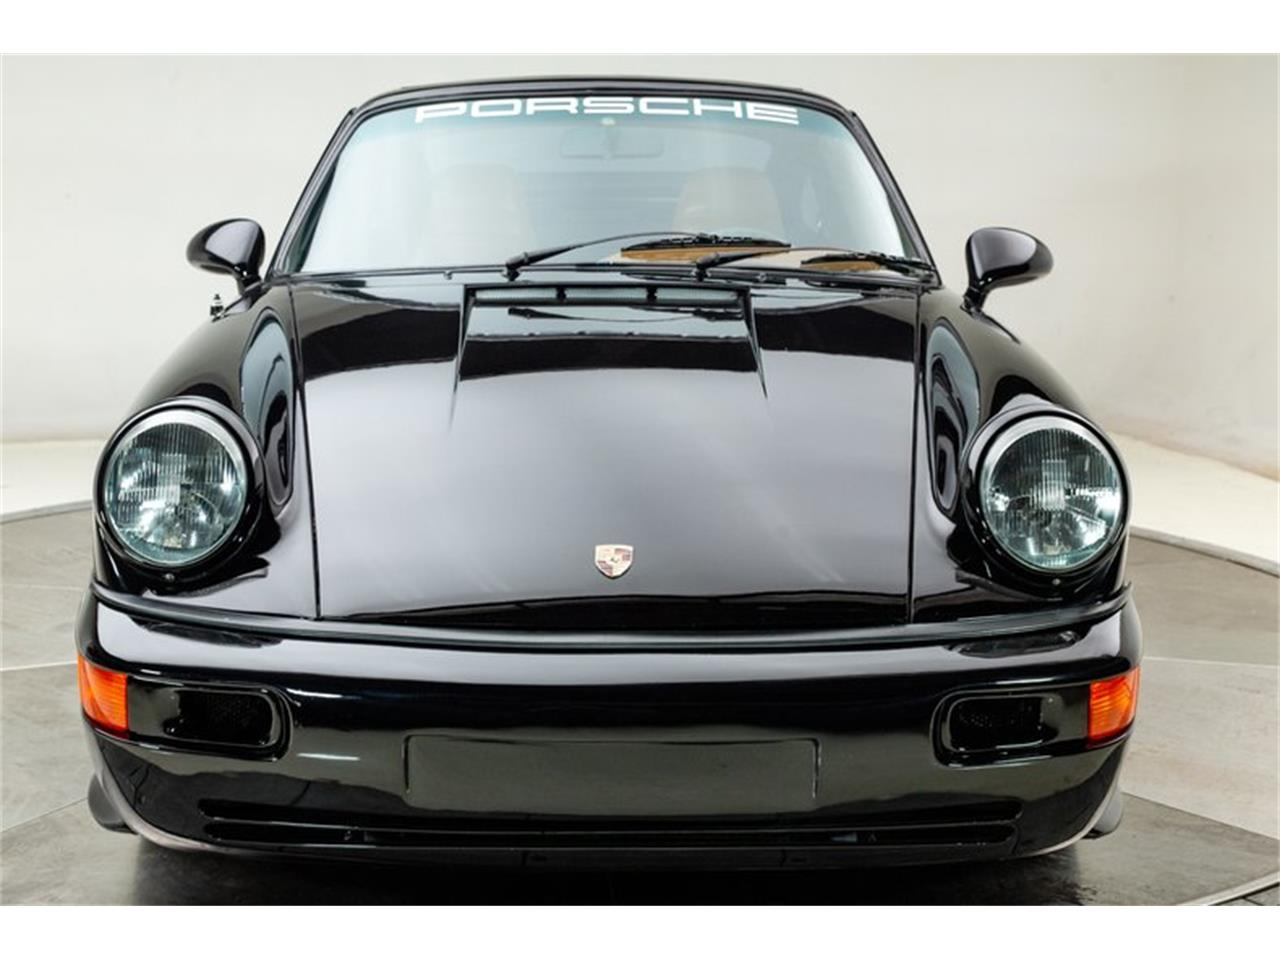 Large Picture of 1979 Porsche 911 located in Cedar Rapids Iowa - $48,950.00 Offered by Duffy's Classic Cars - QG7L